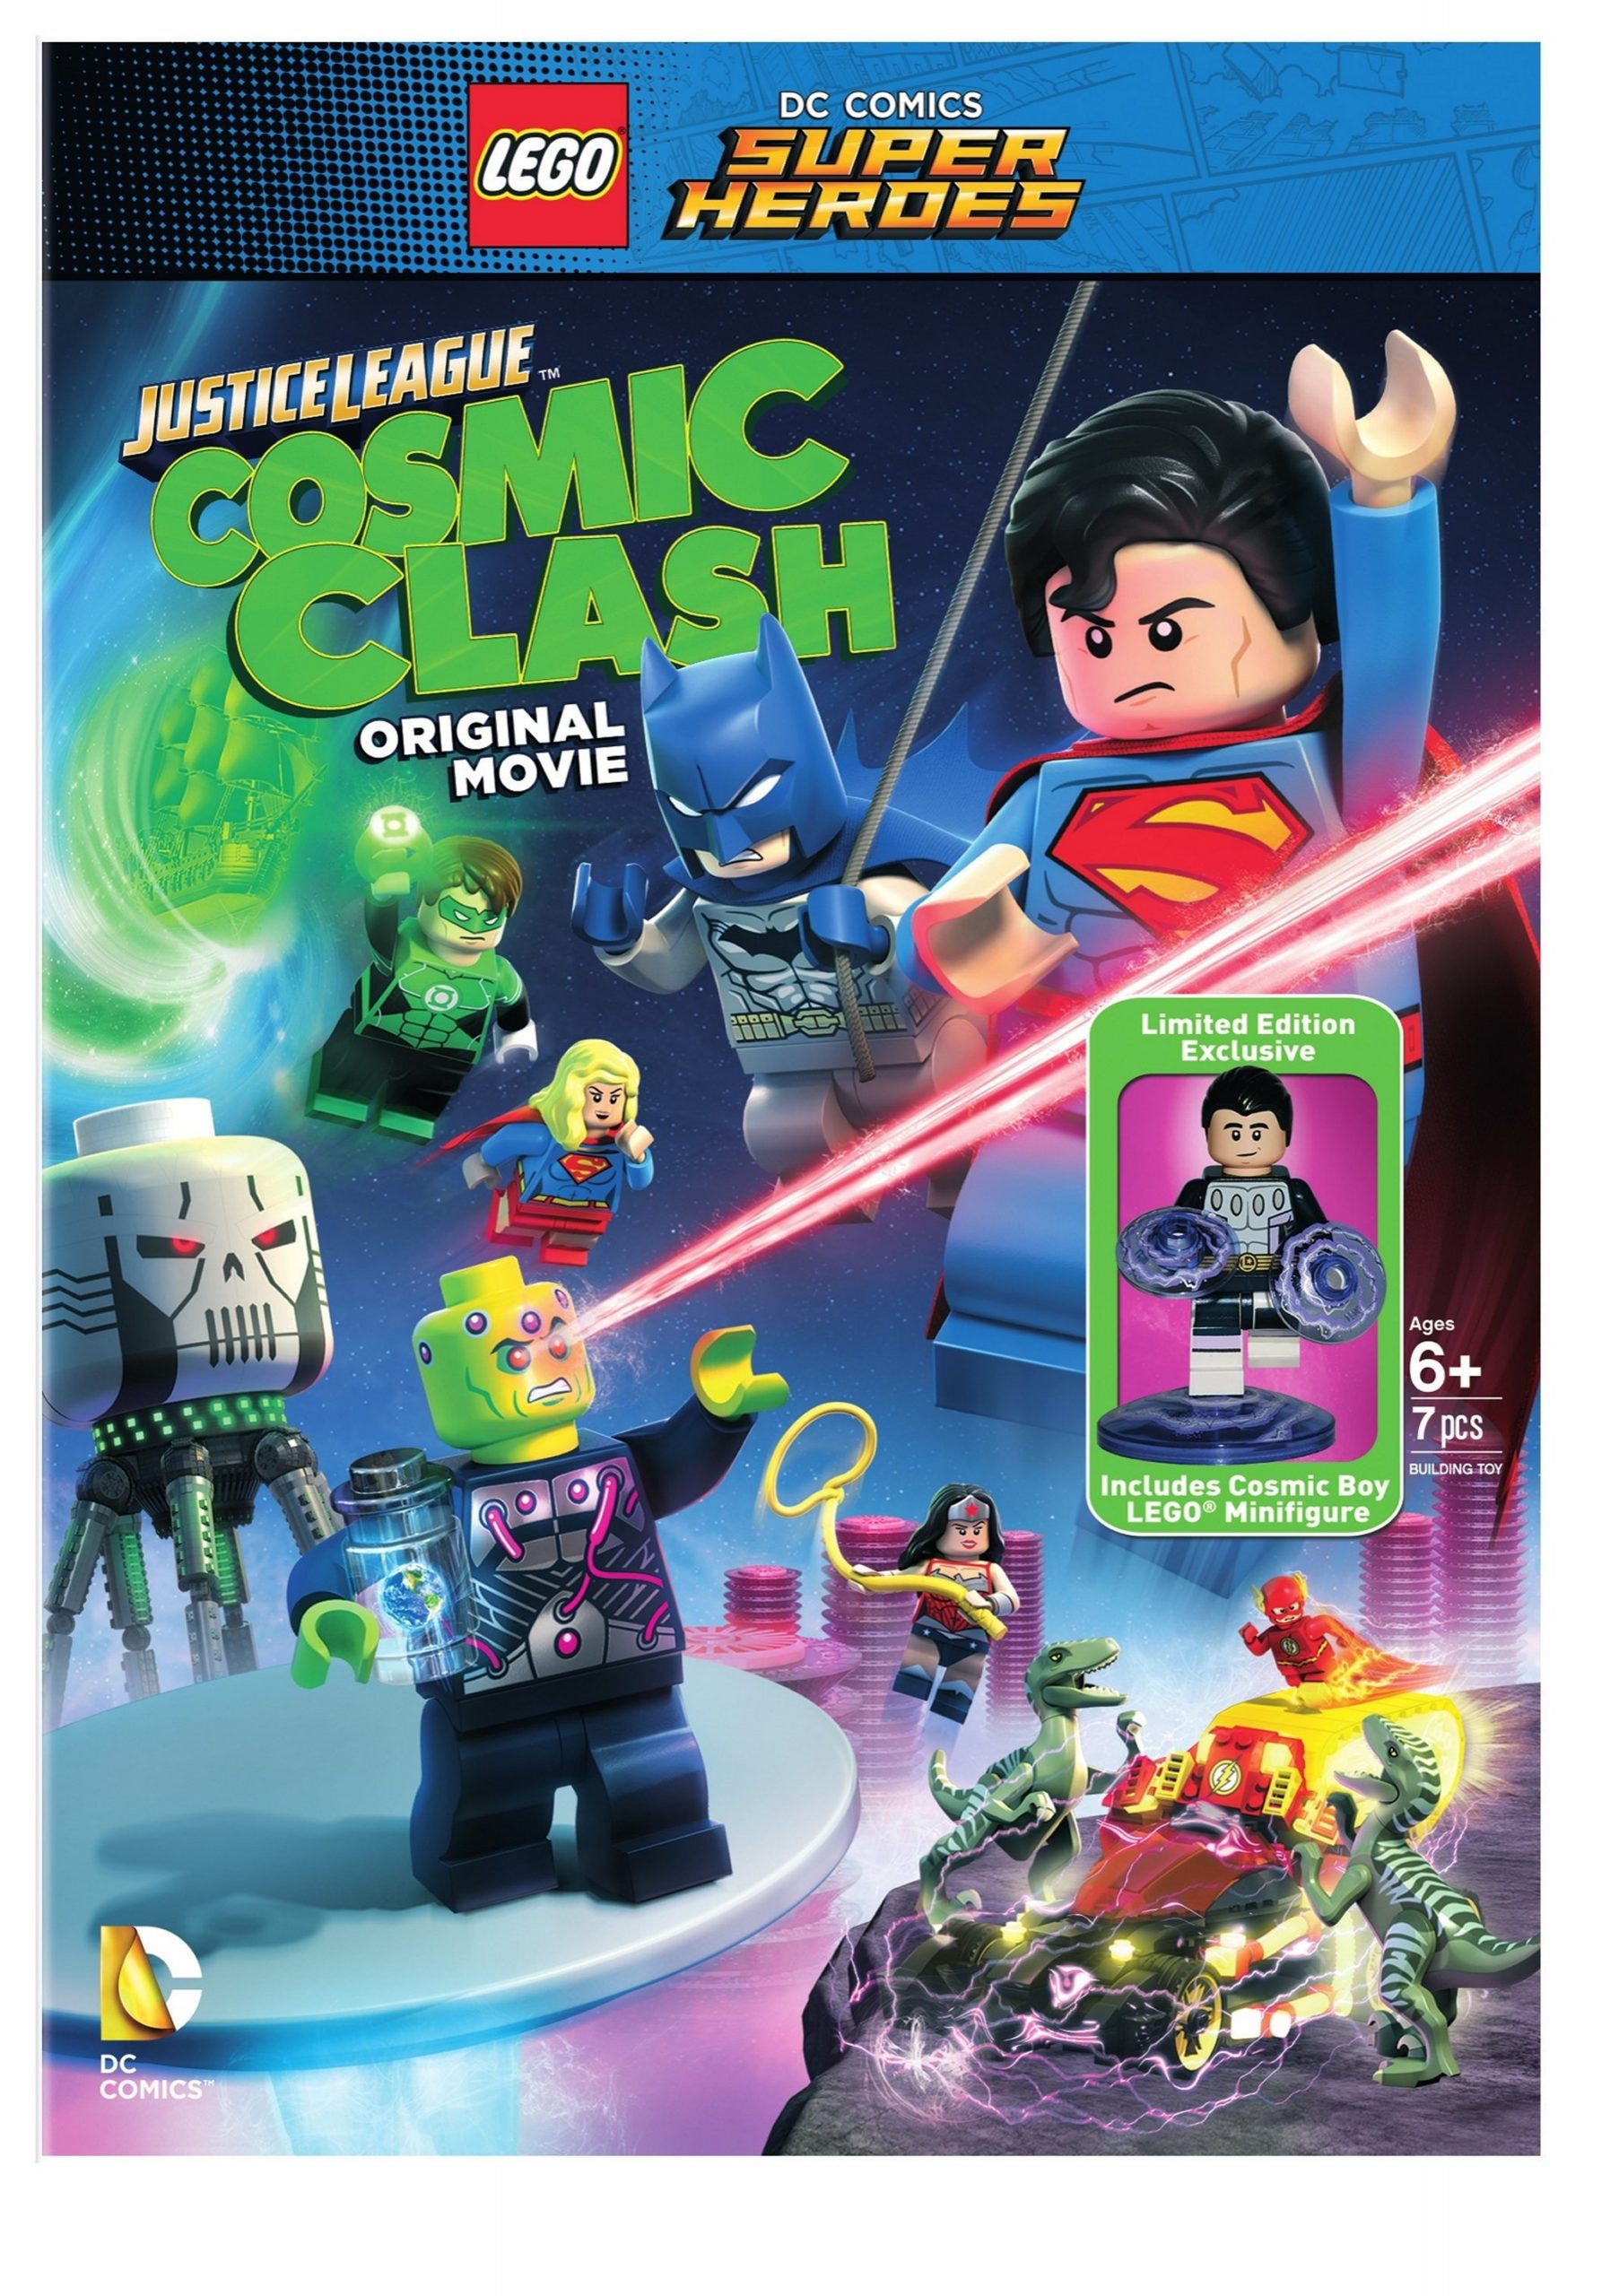 lego 5005095 dc comics super heroes justice league cosmic clash dvd scaled